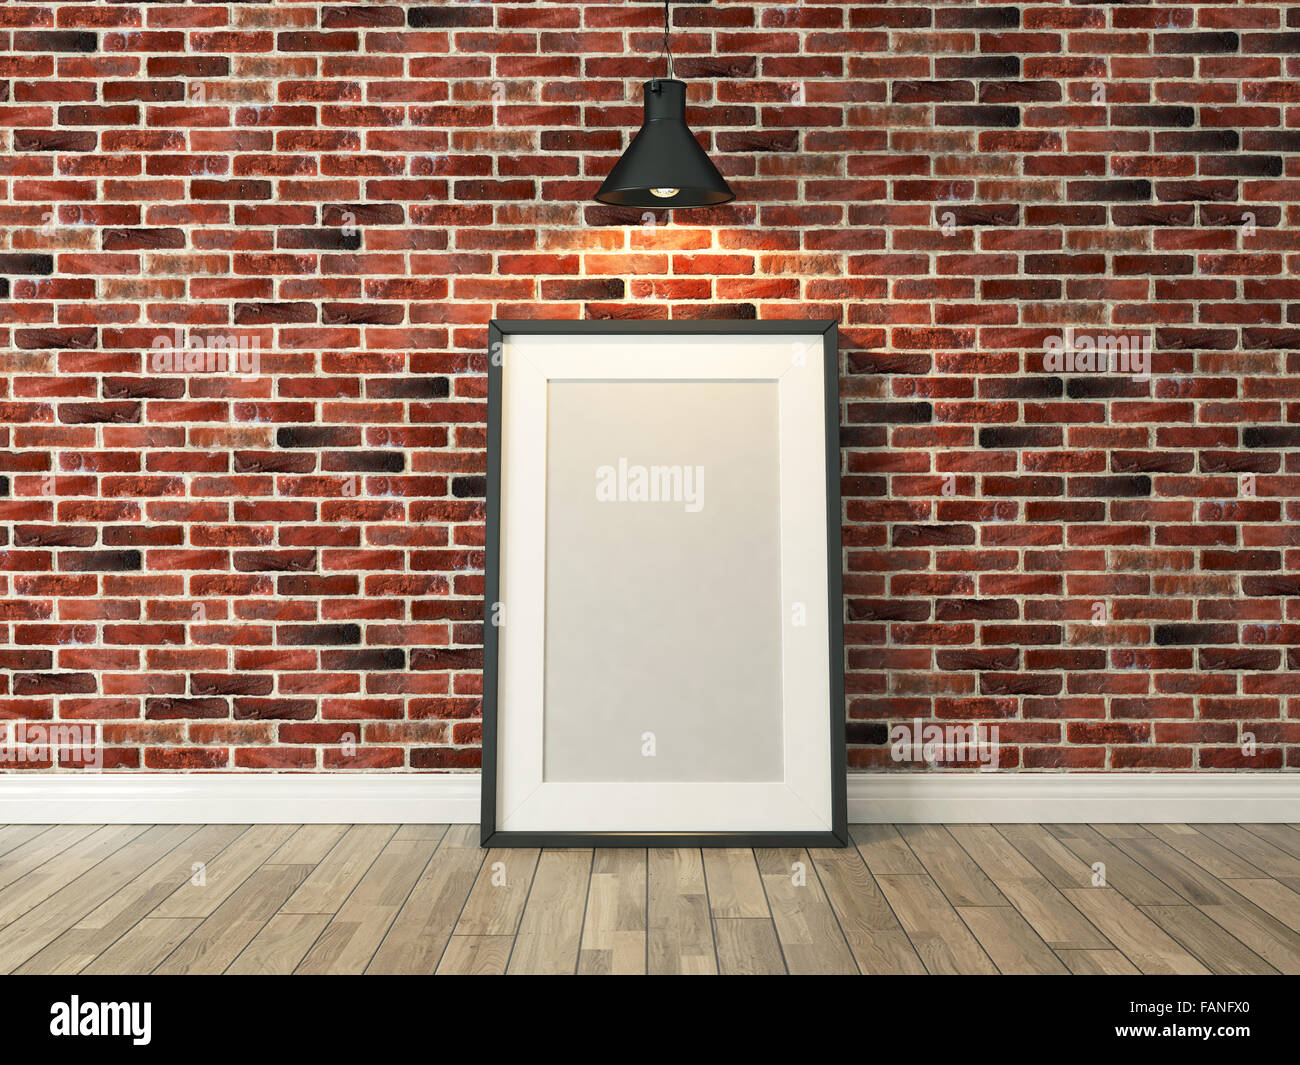 Light Wood Floor Background. picture frame on the red brick wall and wood floor under spot light for  background template advertising rendering